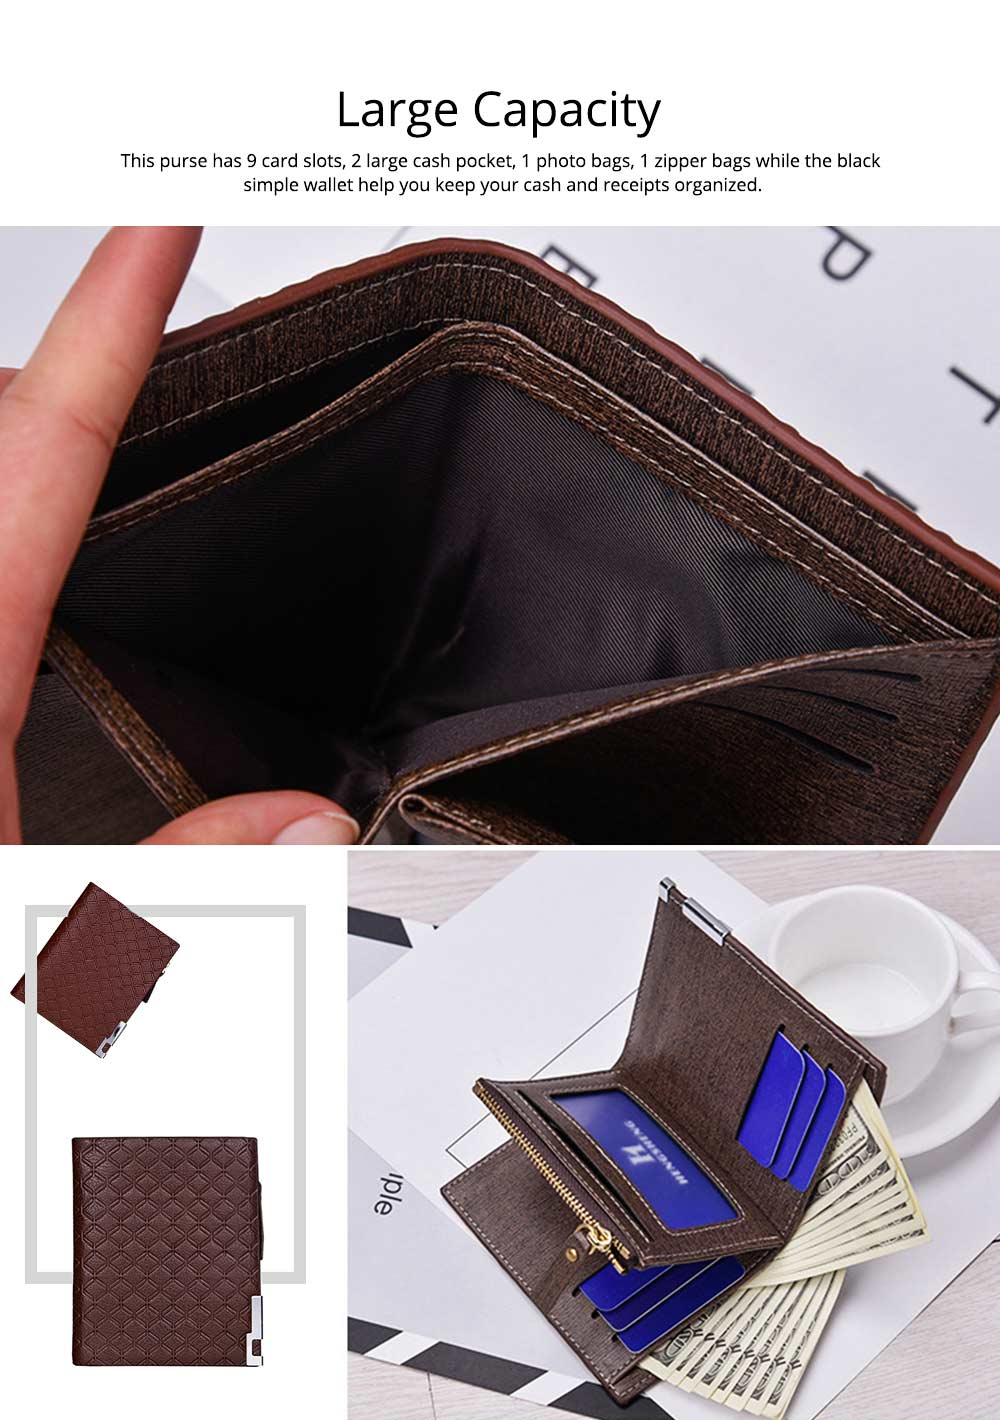 Checkered Change Purse with Two-folding & Multiple Cards Design, Business Genuine Leather Style for Men 4